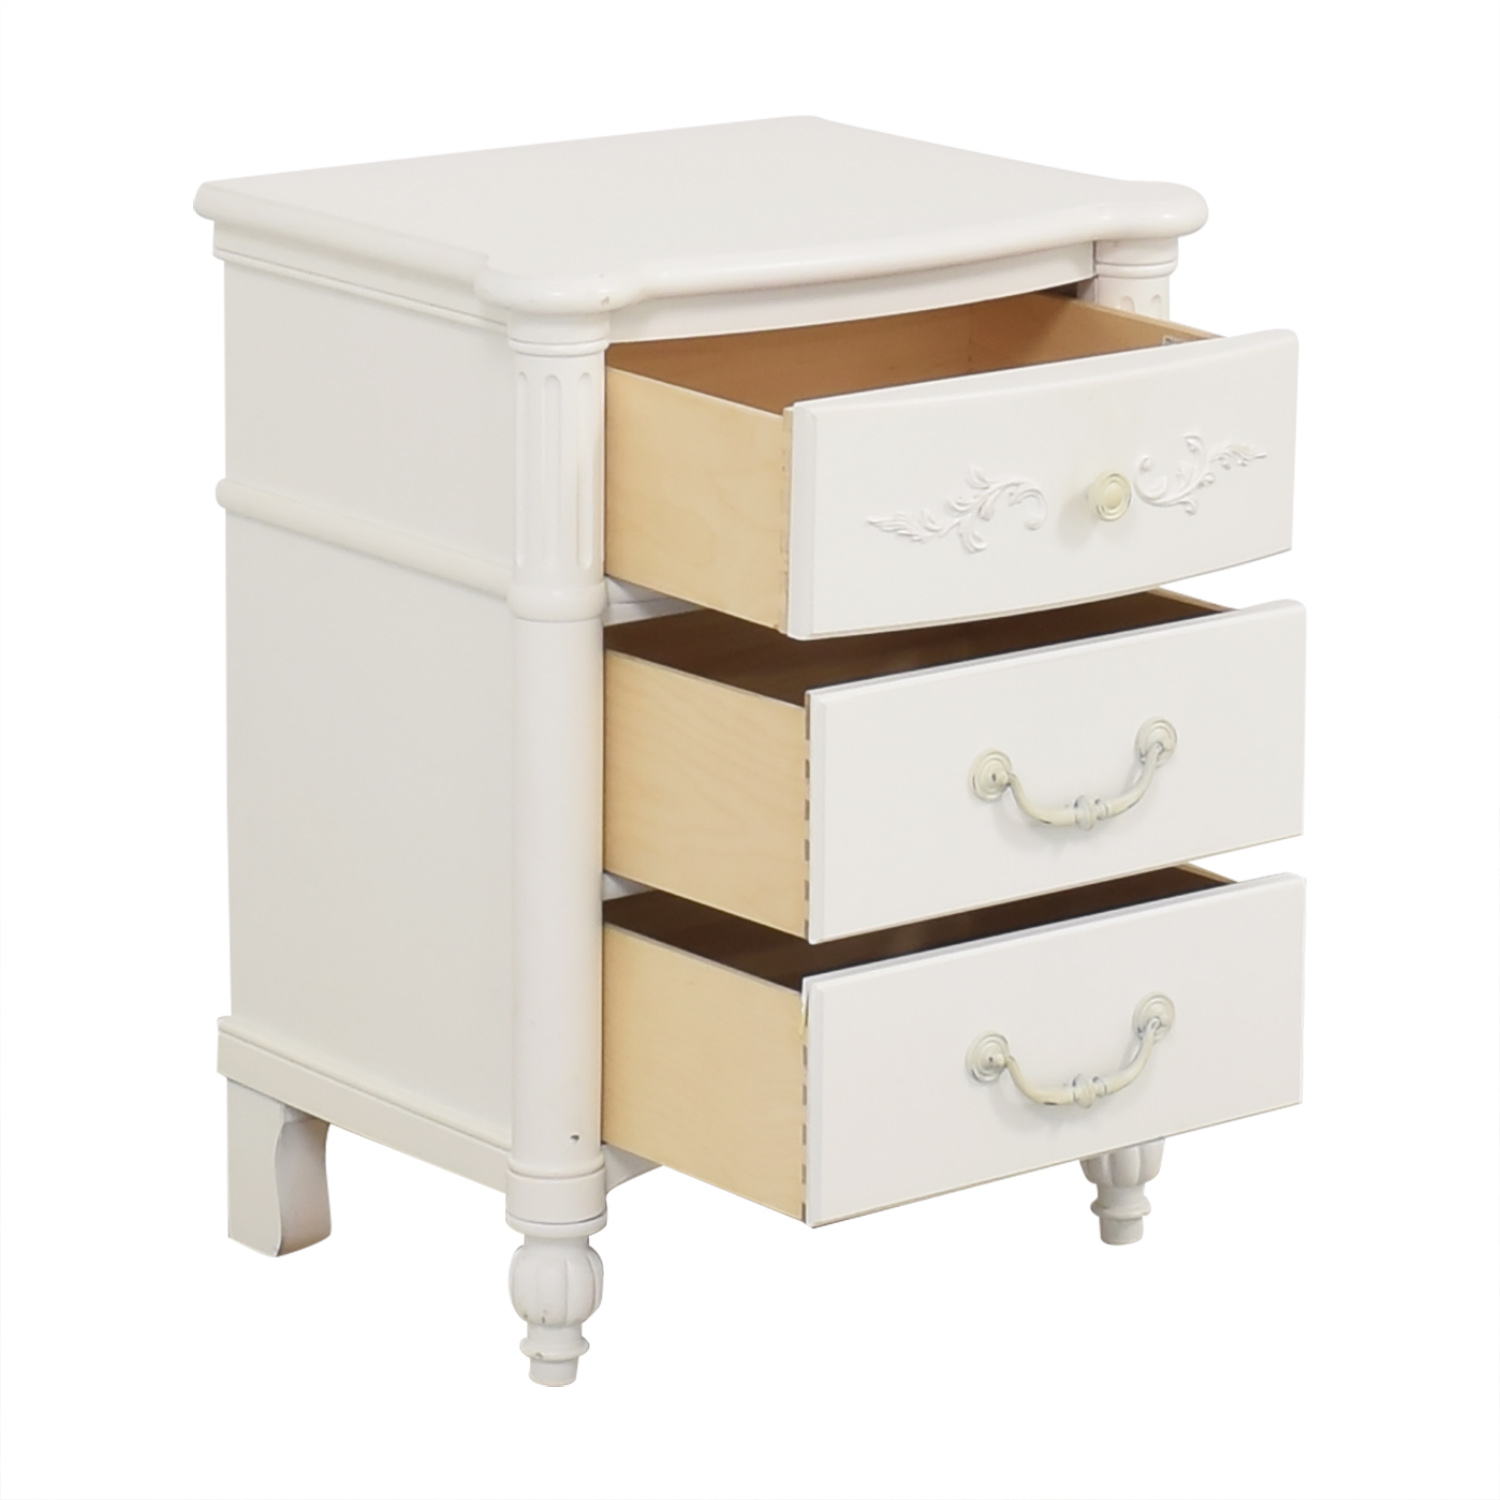 Stanley Furniture Stanley Furniture Cameo Night Table for sale